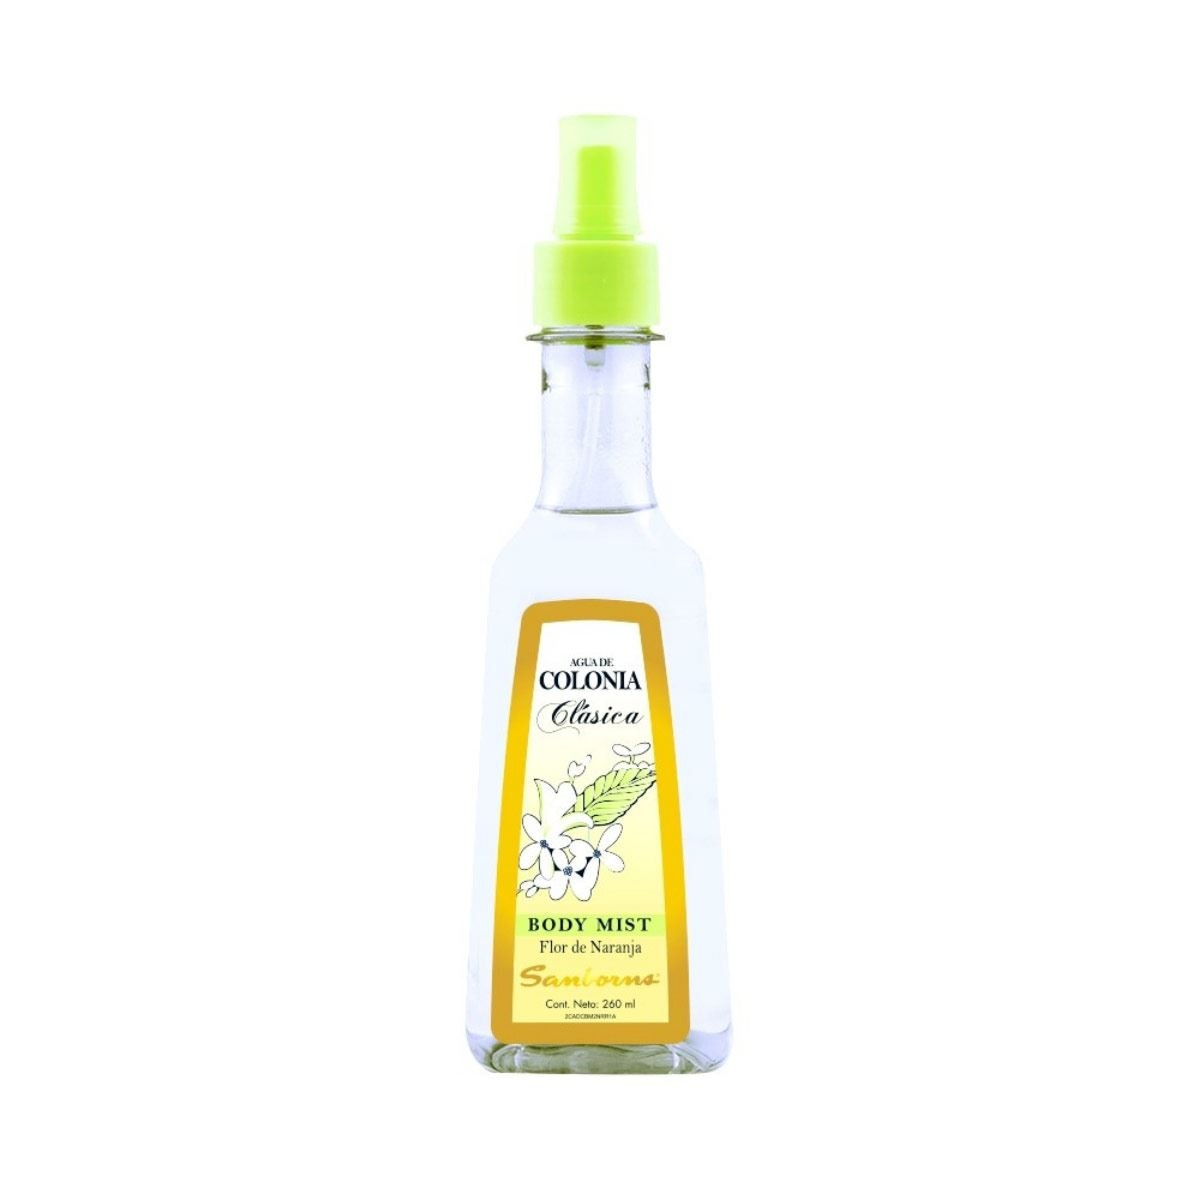 Agua de colonia body mist 260 ml  - Sanborns